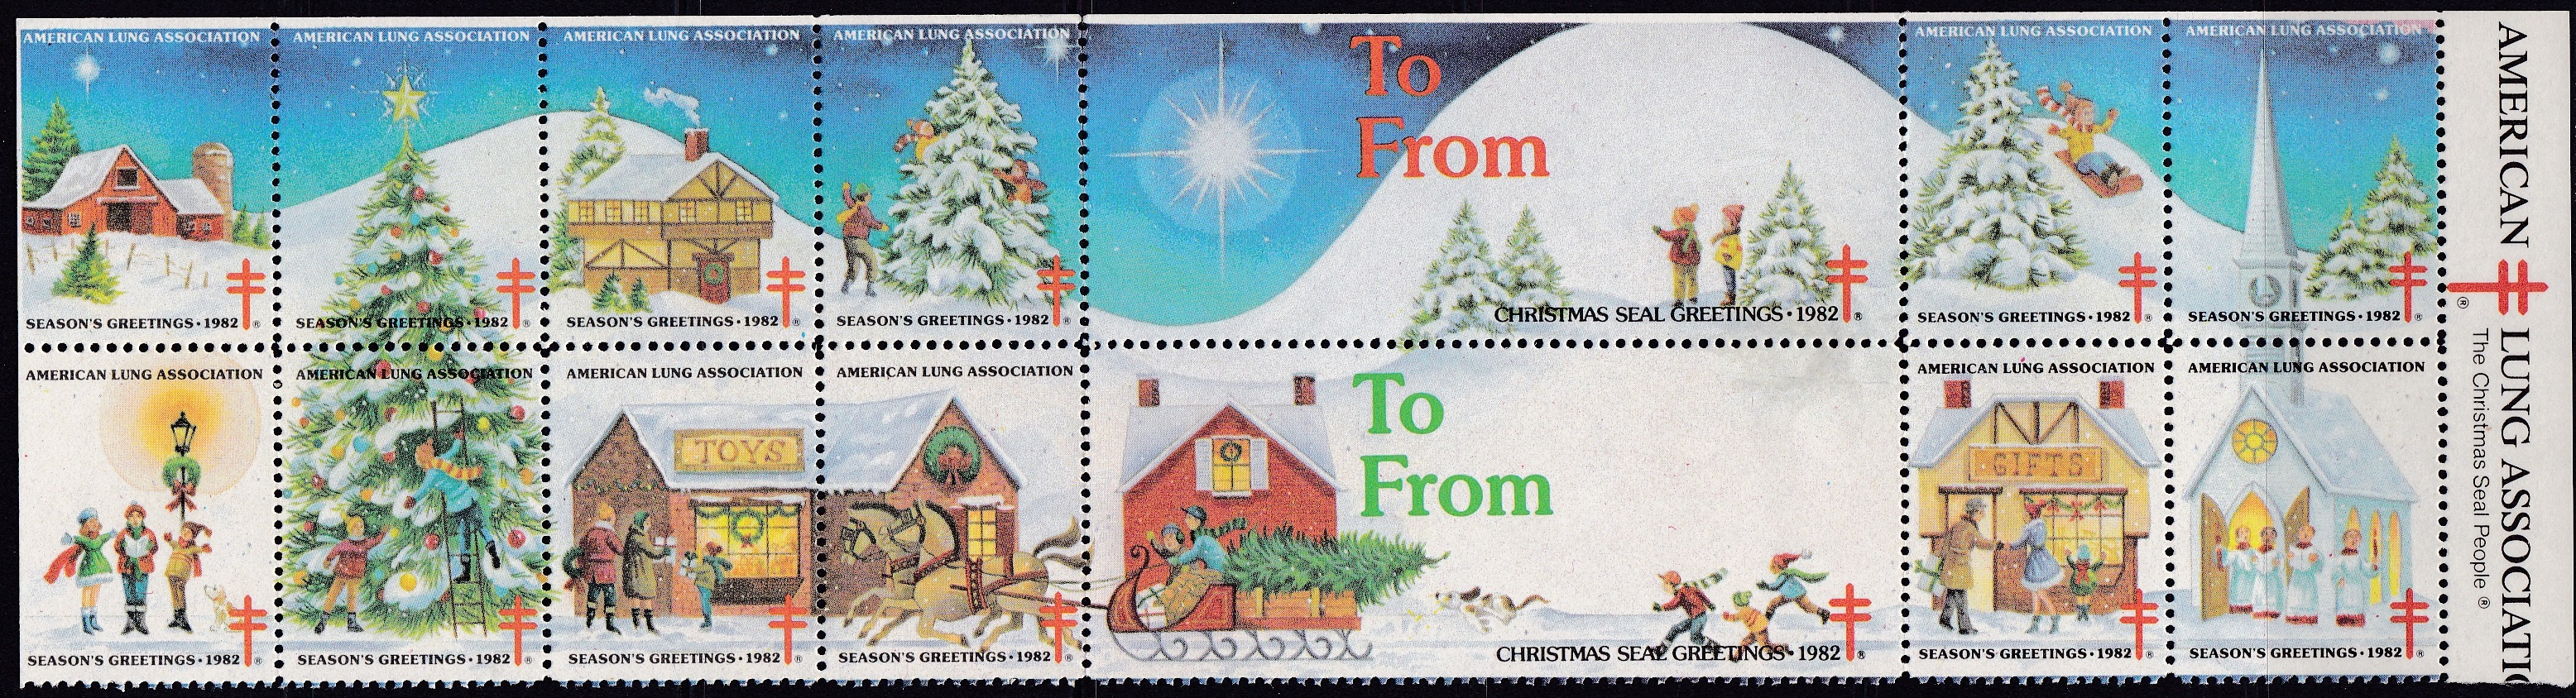 1982 Village Snowscene Christmas Seal Design Experiment